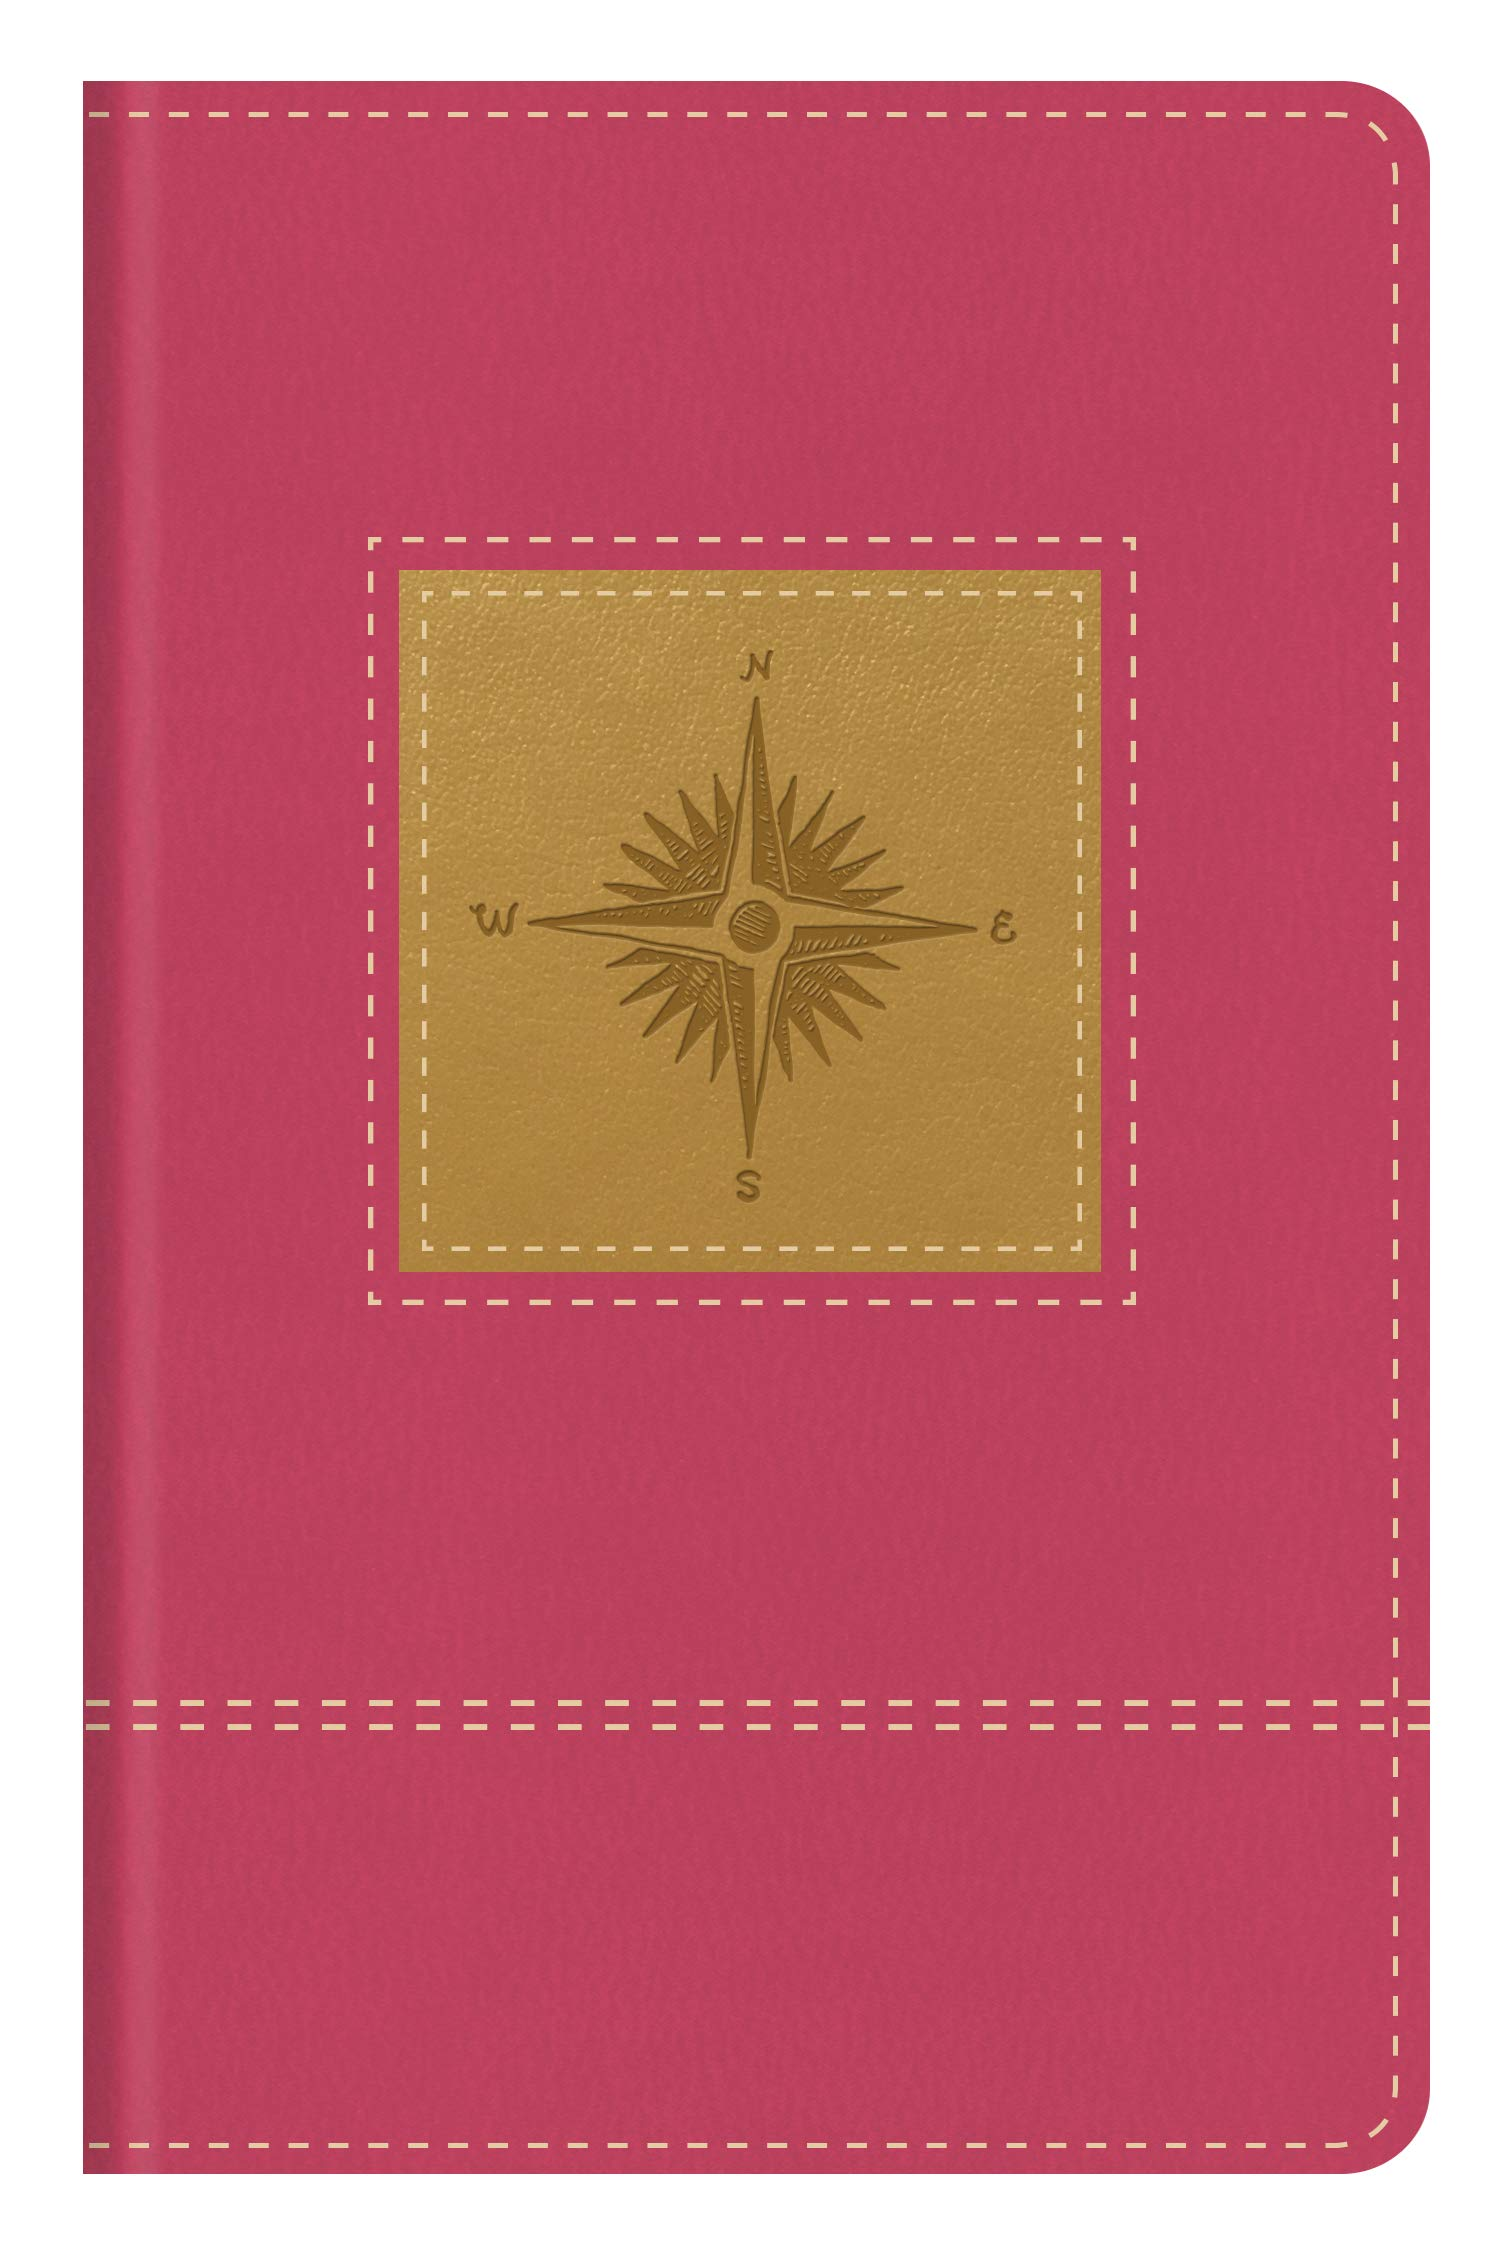 bd425d01aa91f Go-Anywhere KJV Study Bible (Primrose Compass): Christopher D ...